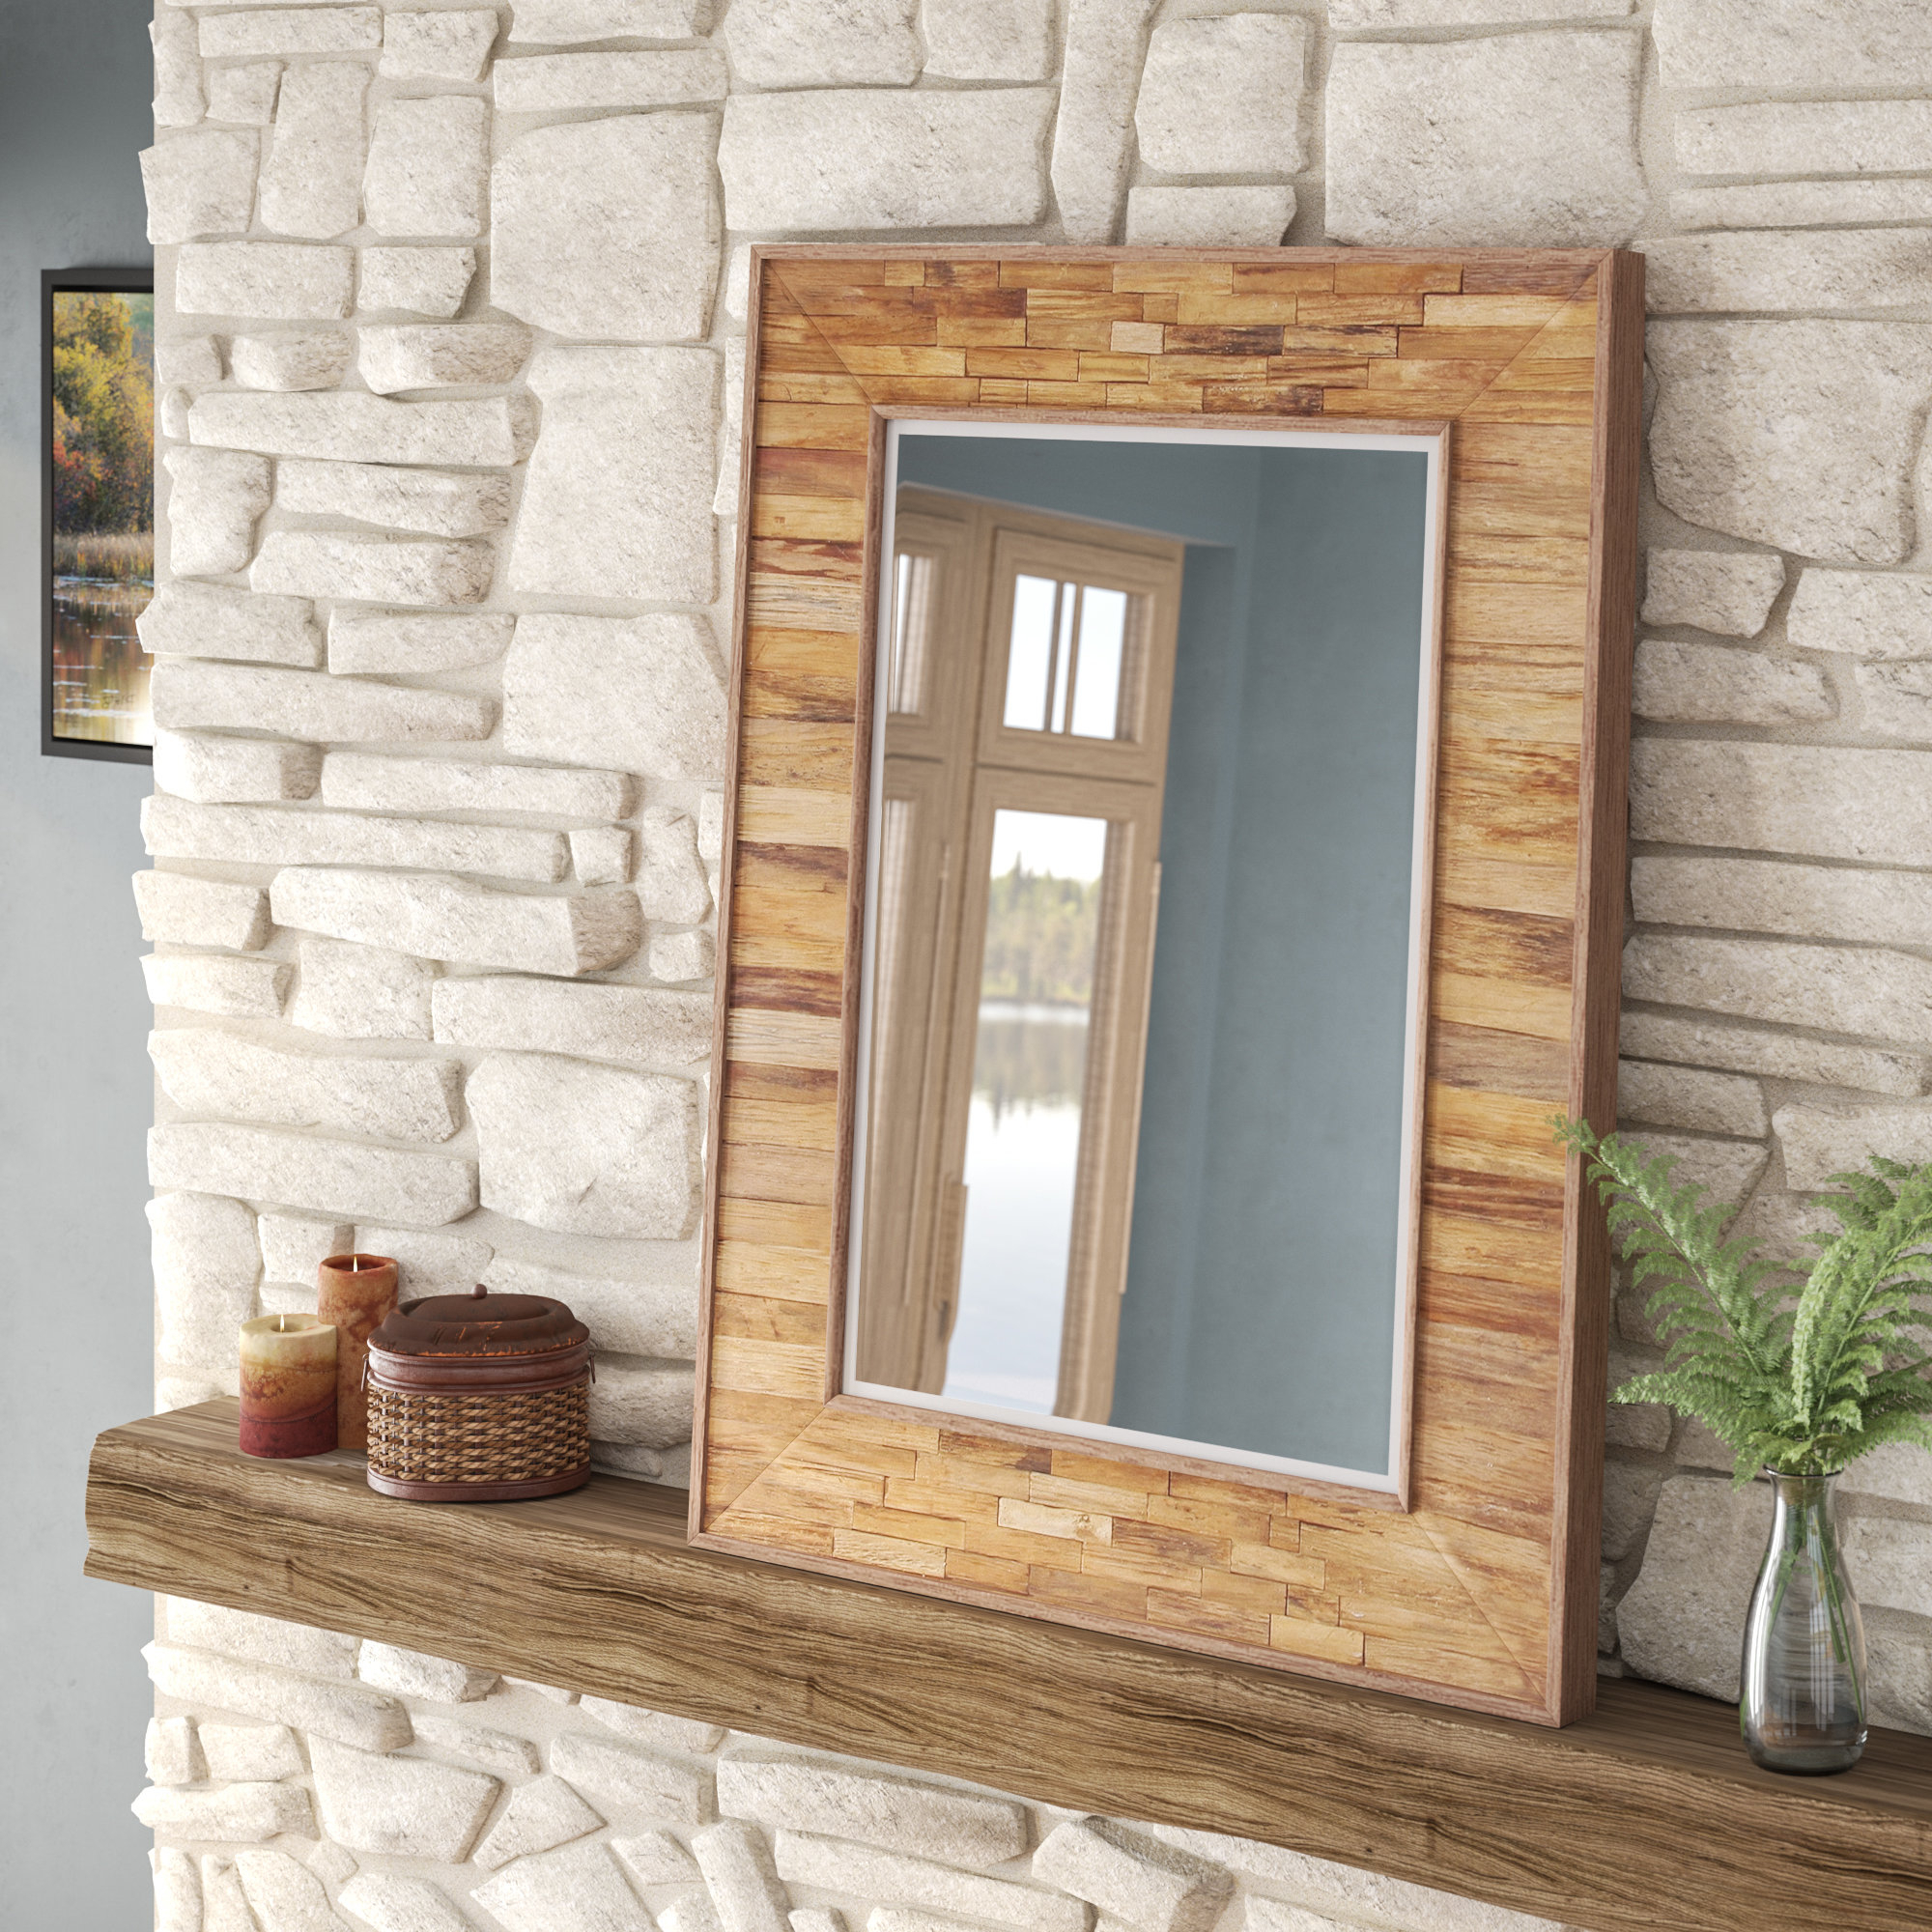 2020 Helgeson Organic En Accent Mirror Intended For Booth Reclaimed Wall Mirrors Accent (View 16 of 20)